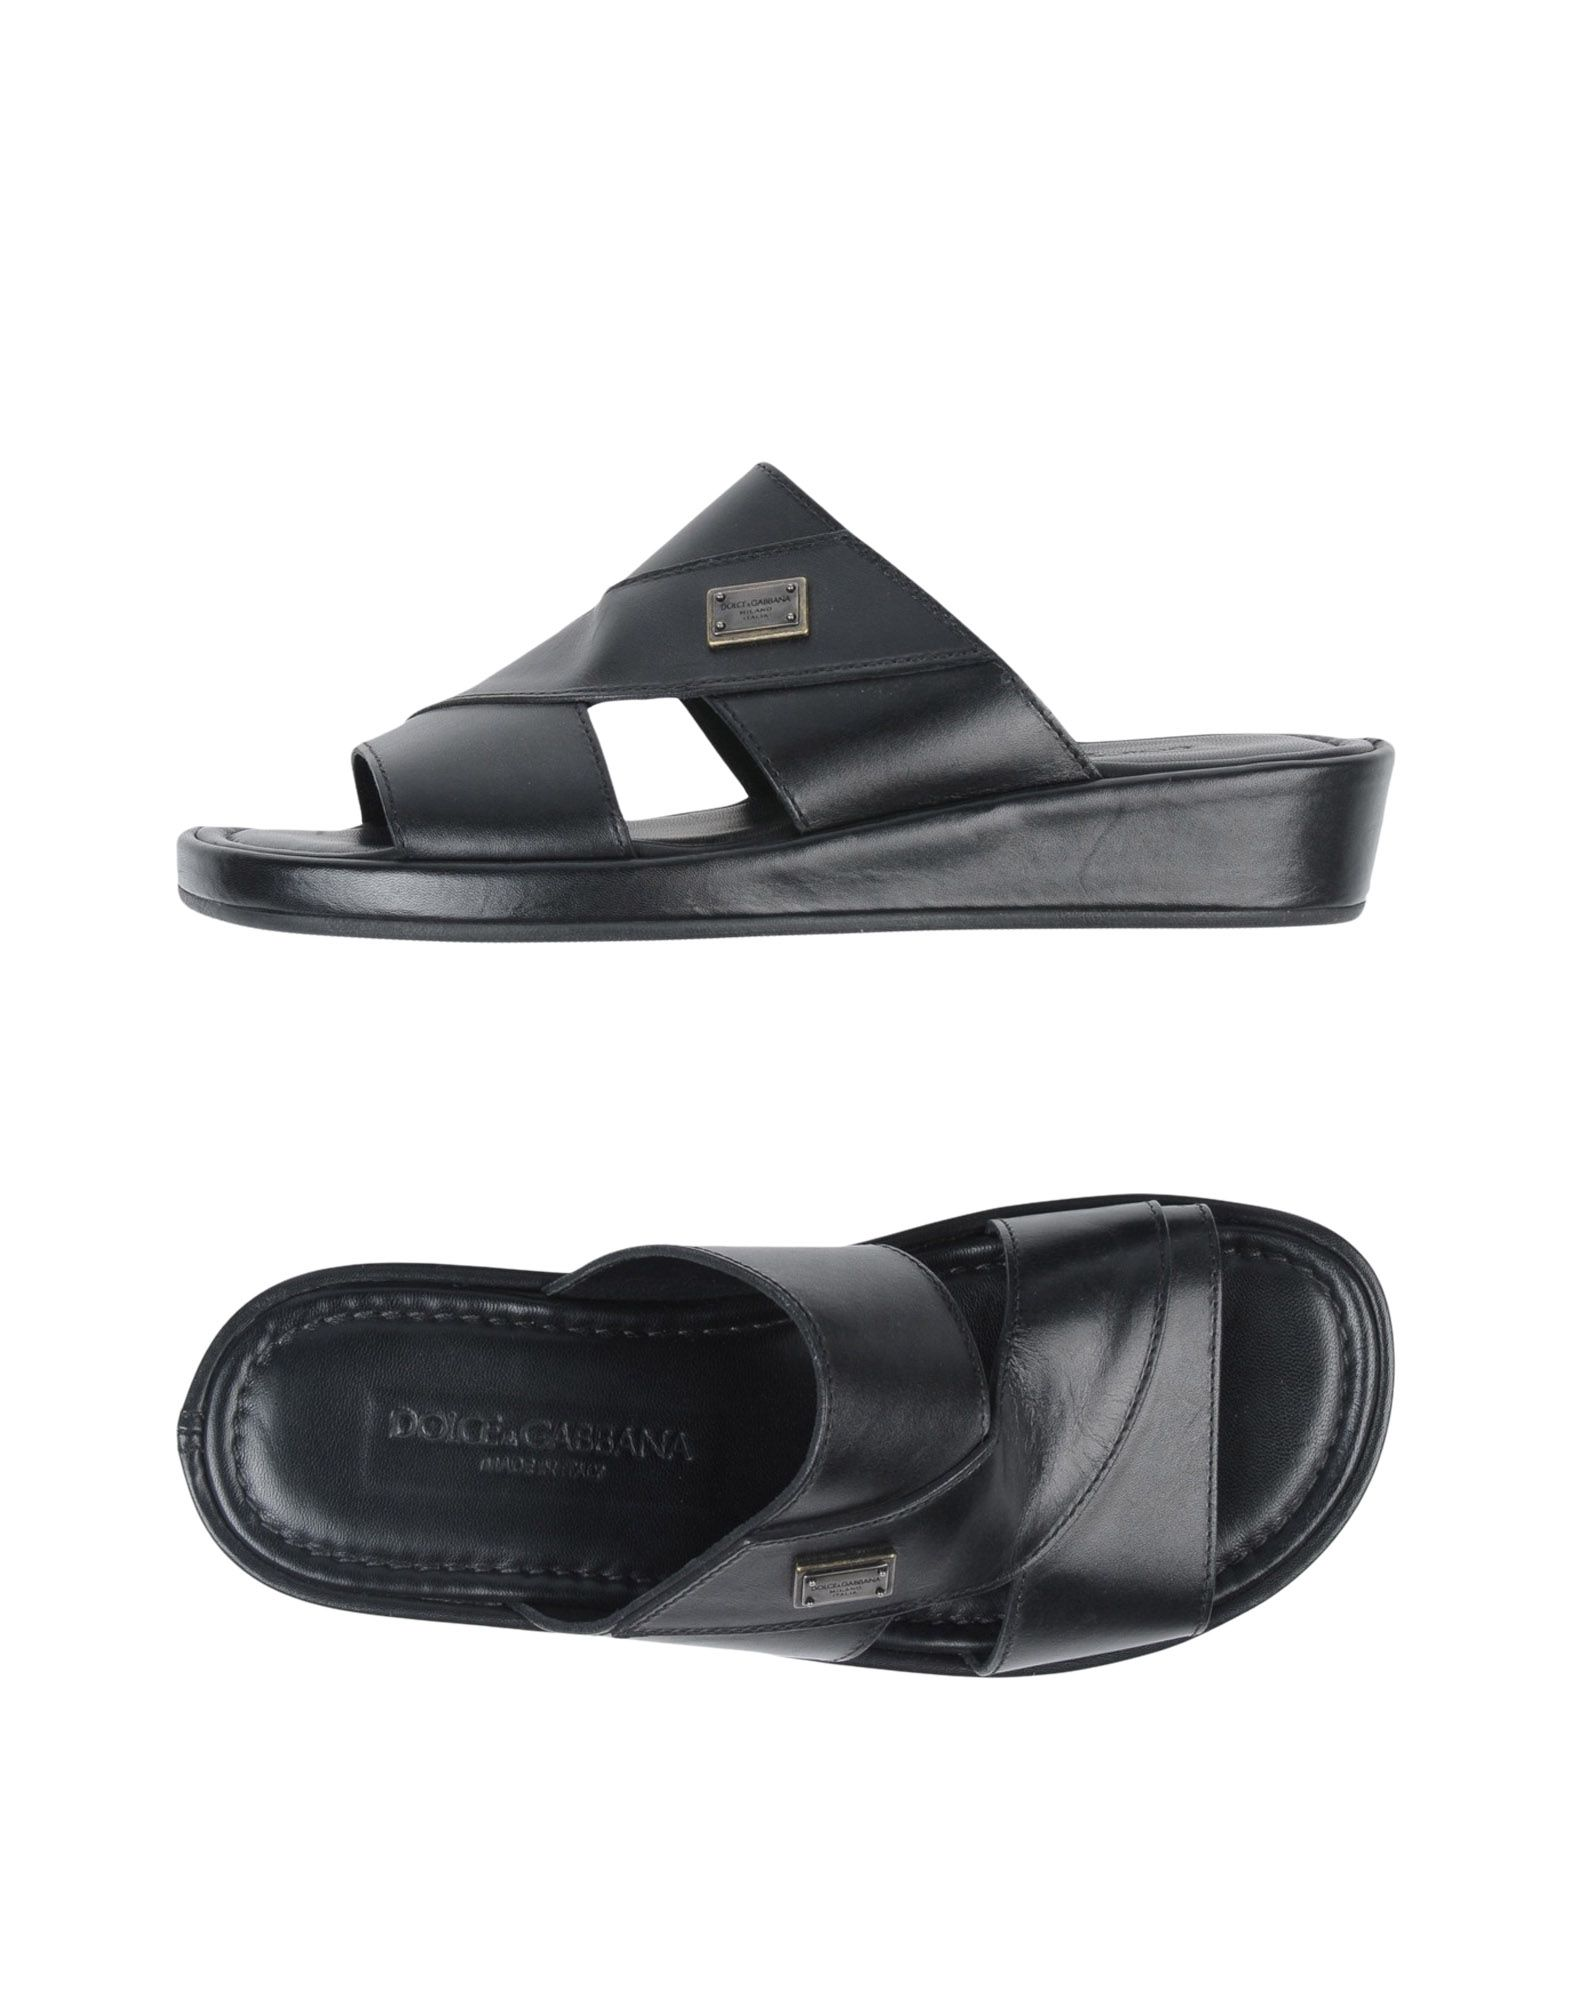 Dolce & Gabbana Sandals - Men Dolce & Gabbana Sandals - online on  Canada - Sandals 11488517ST 0c9fde